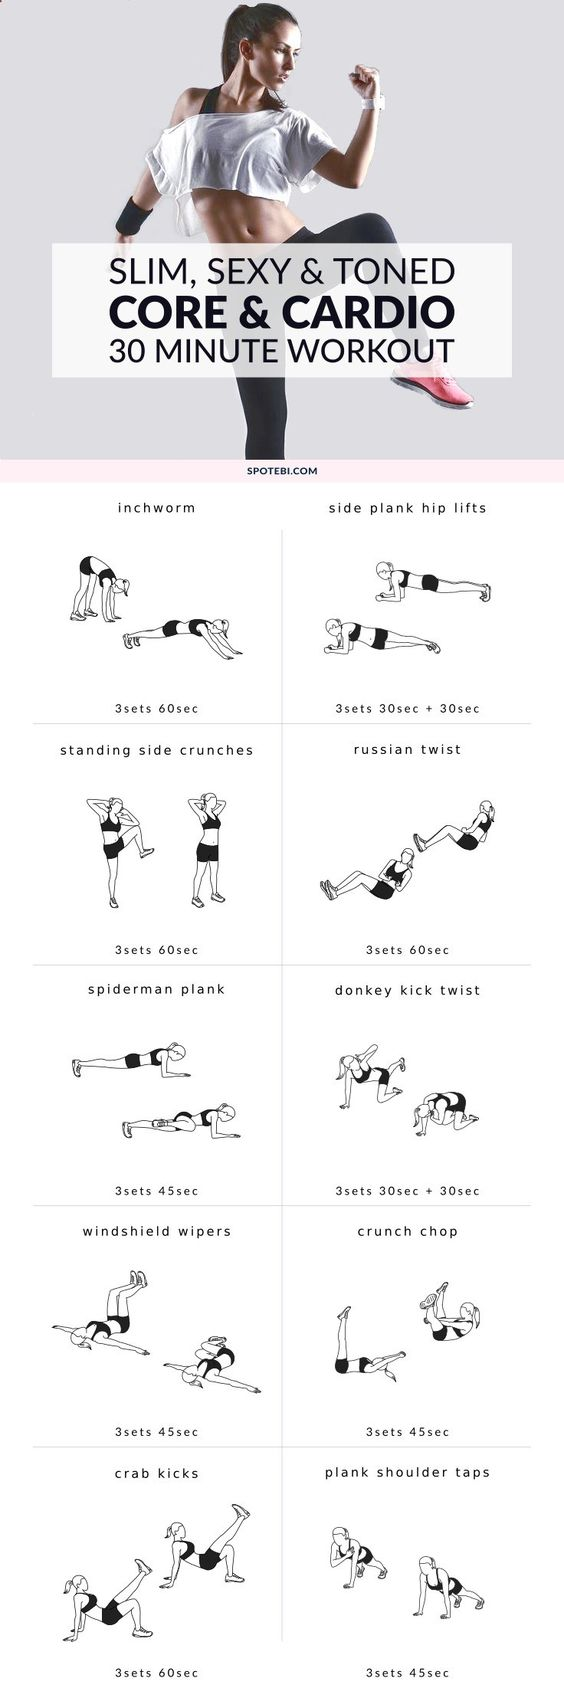 Slim Sexy Toned Core Cardio 30 Minute Workout